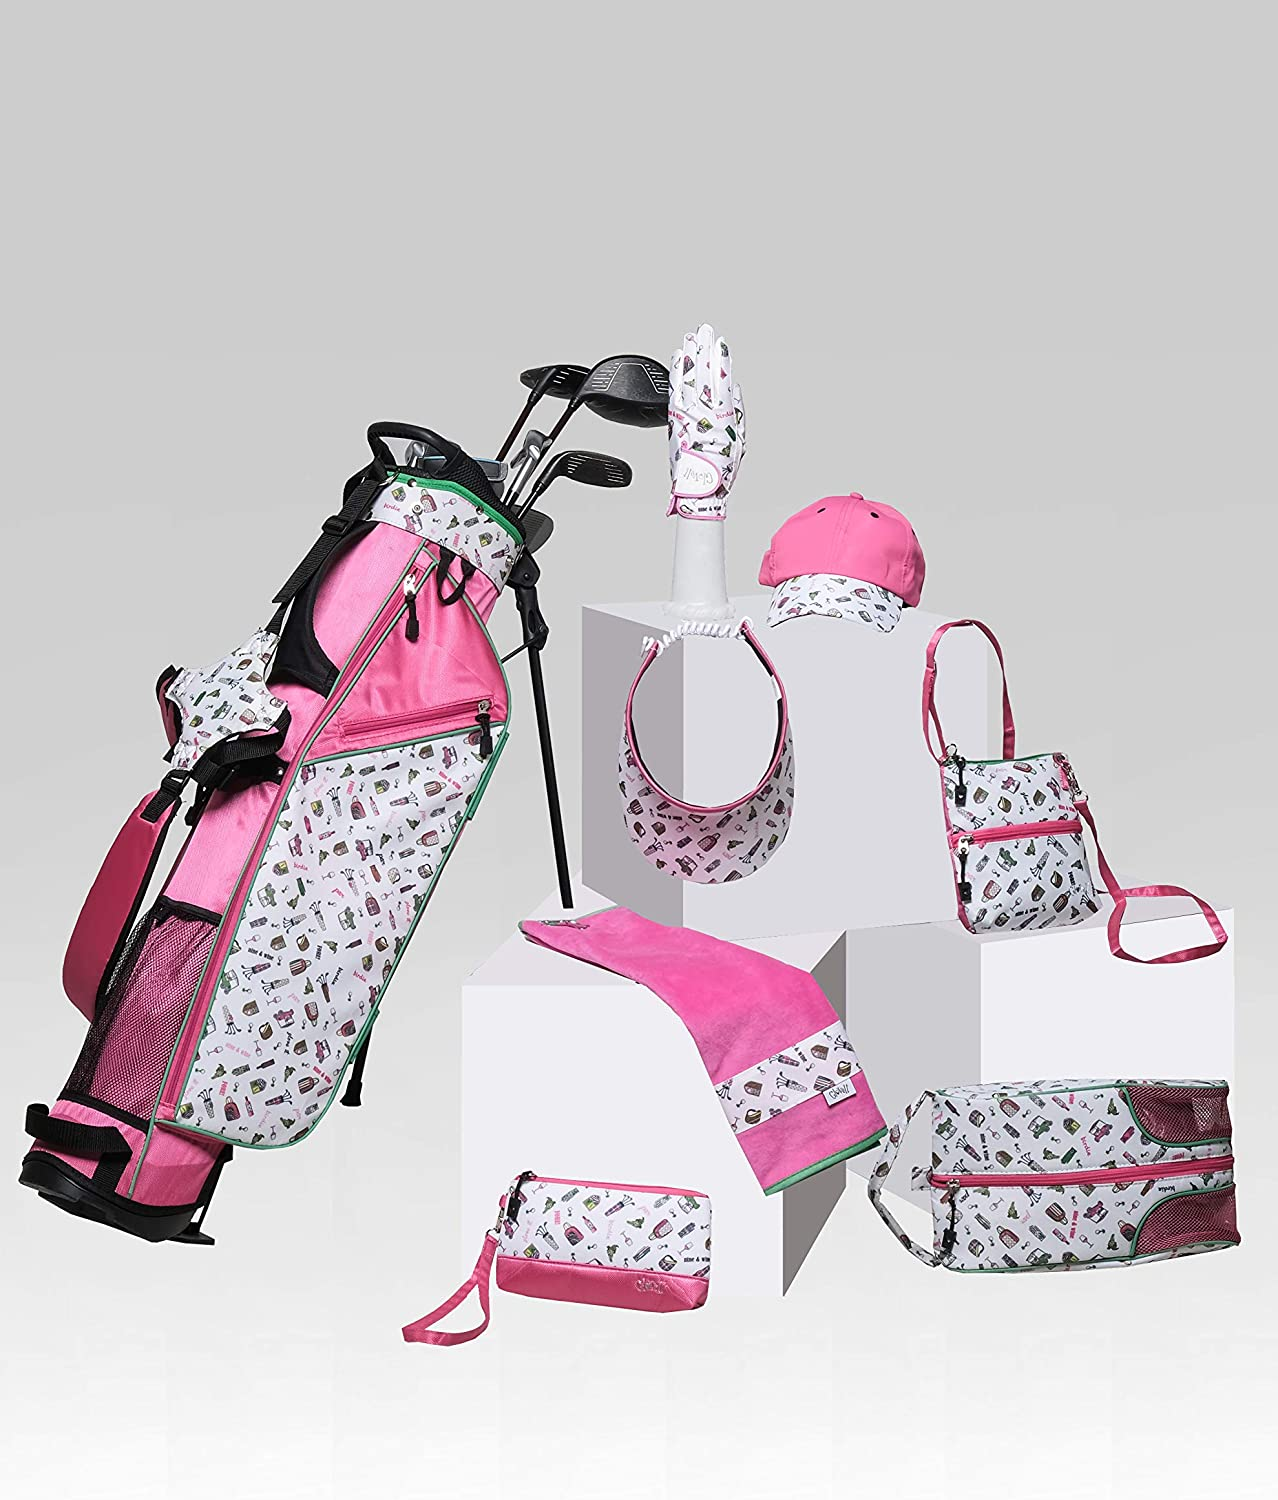 Glove It Exclusive Nine & Wine Mini Sunday Golf Bag for Women, Lightweight with Stand, 4-Way Divider, 3 Easy-Access Pockets, Pink (GBS180)